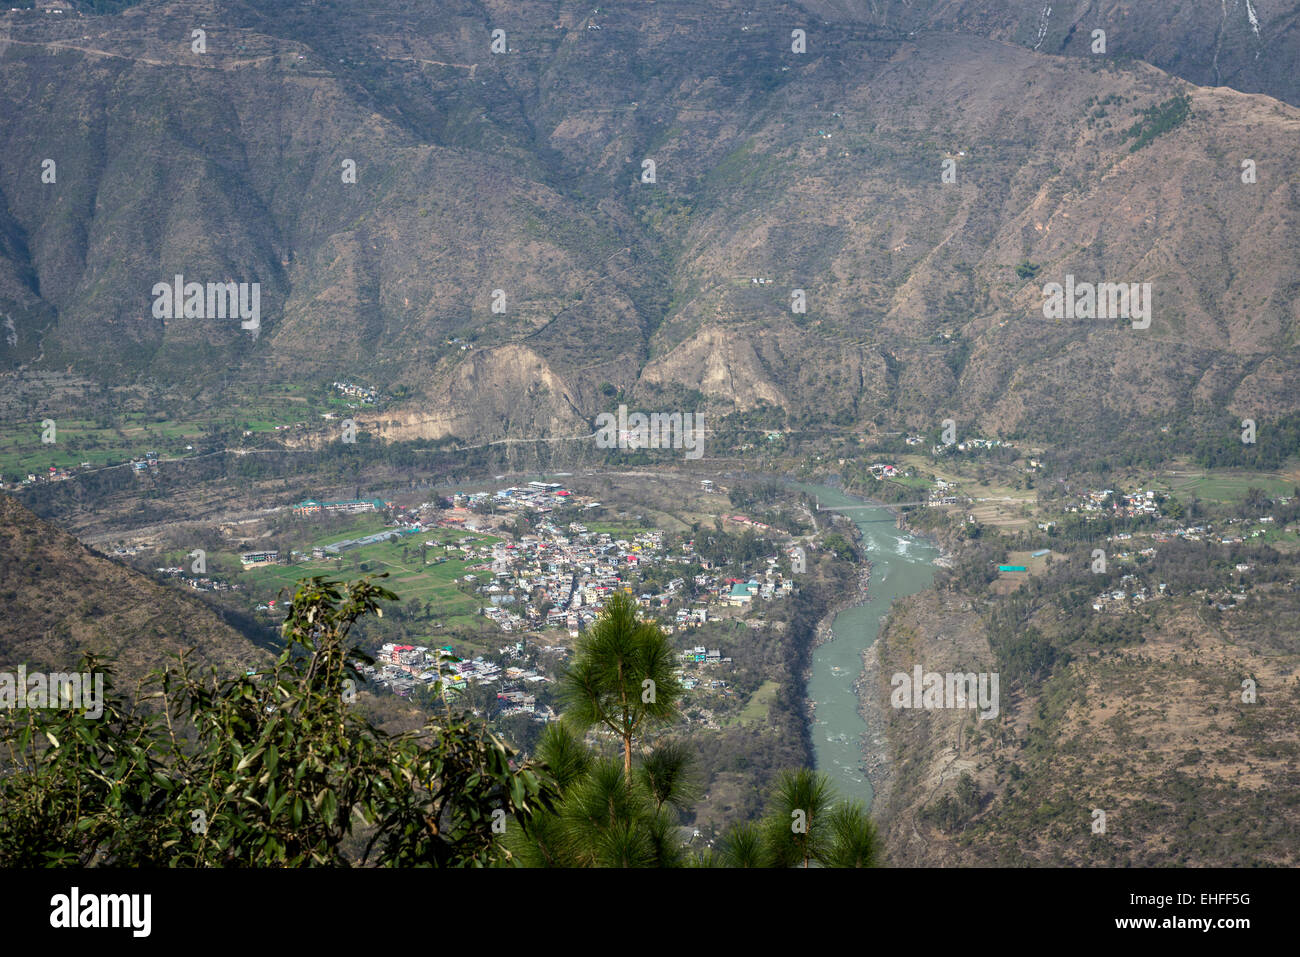 The Sutlej River winding around Tattapani, Himachal Pradesh, India - Stock Image